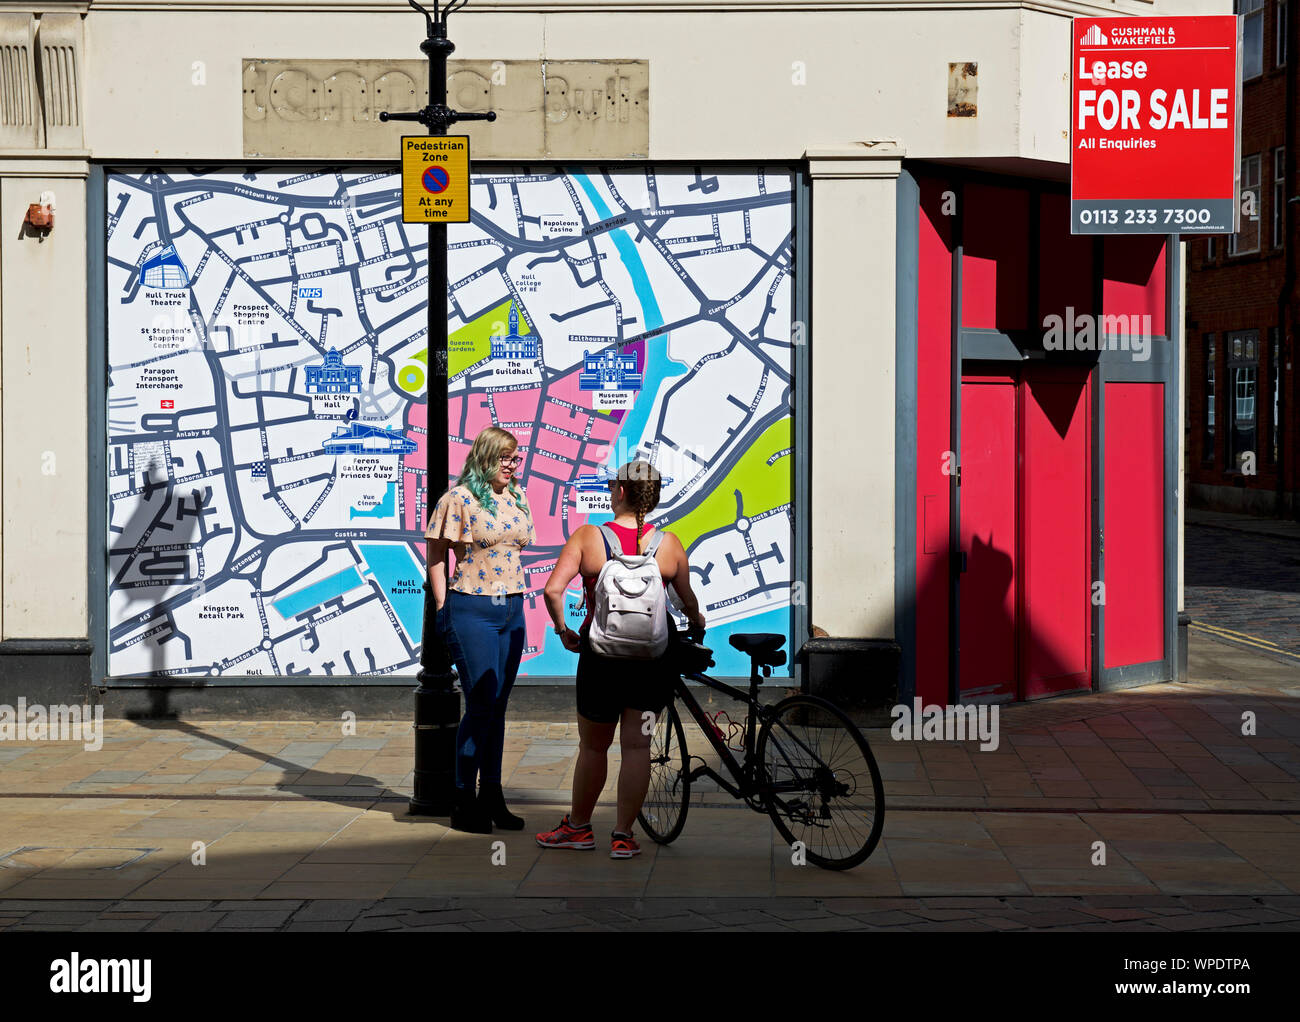 two-young-women-chatting-on-prospect-street-in-front-of-a-map-of-the-city-hull-east-yorkshire-england-uk-WPDTPA.jpg